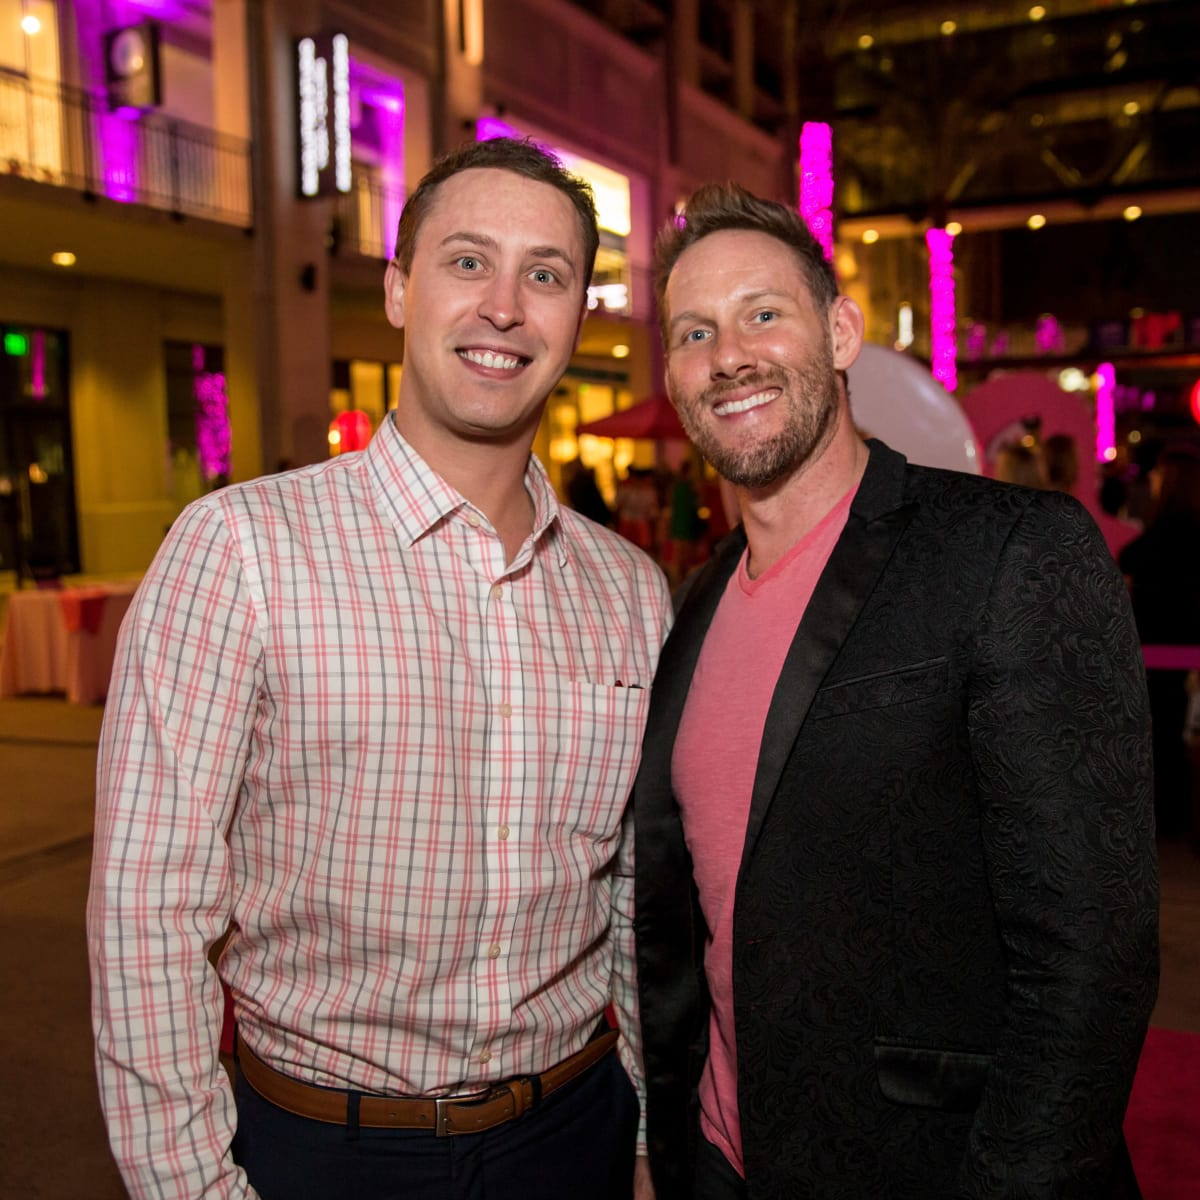 Houston, Marcy, West Ave Pink Party, October 2017, Stephen Hinson, Robert King Levy III